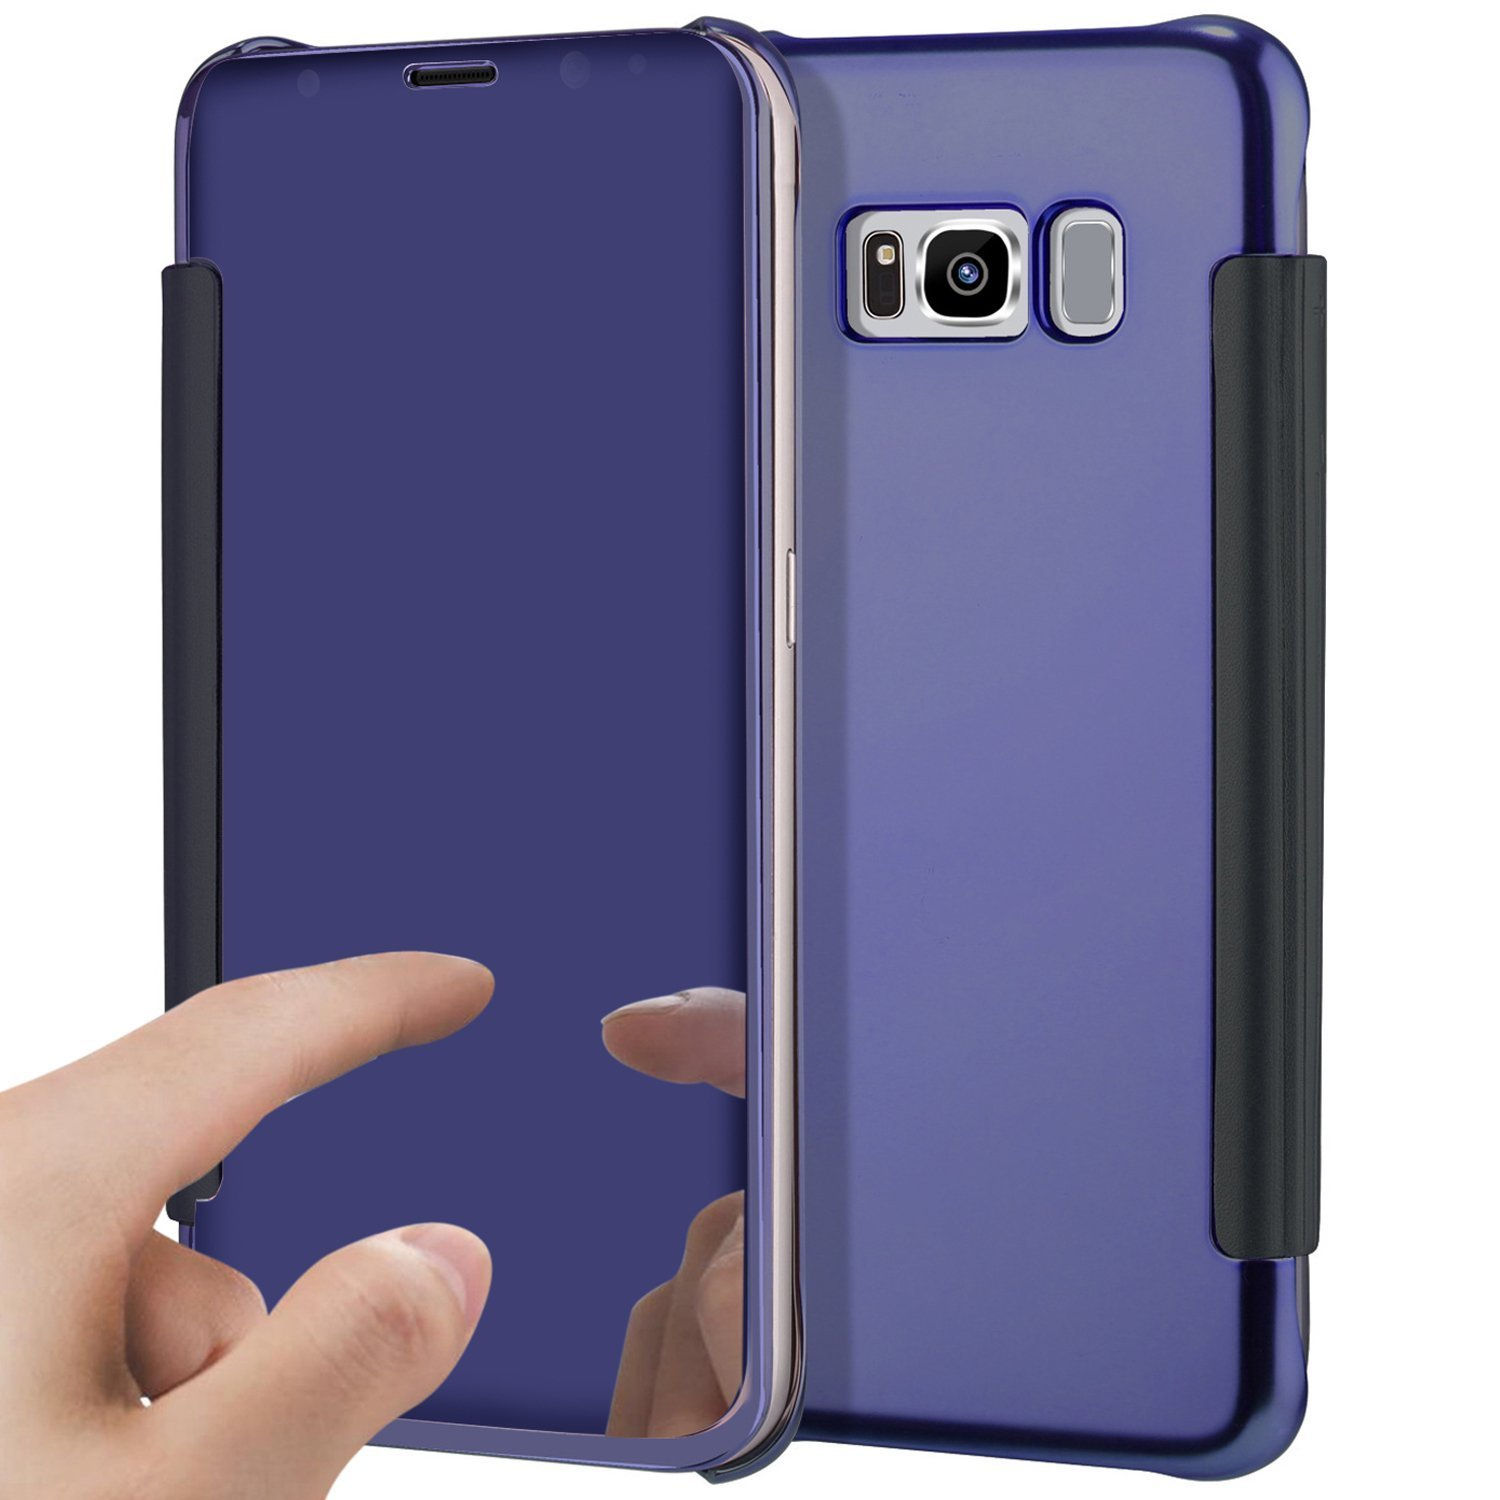 PHEZEN Galaxy S8 Case, Luxury Mirror Makeup Case Plating Clear View PU Leather Flip Folio Case Magnetic Closure Full Cover Case for Samsung Galaxy S8 (Purple)